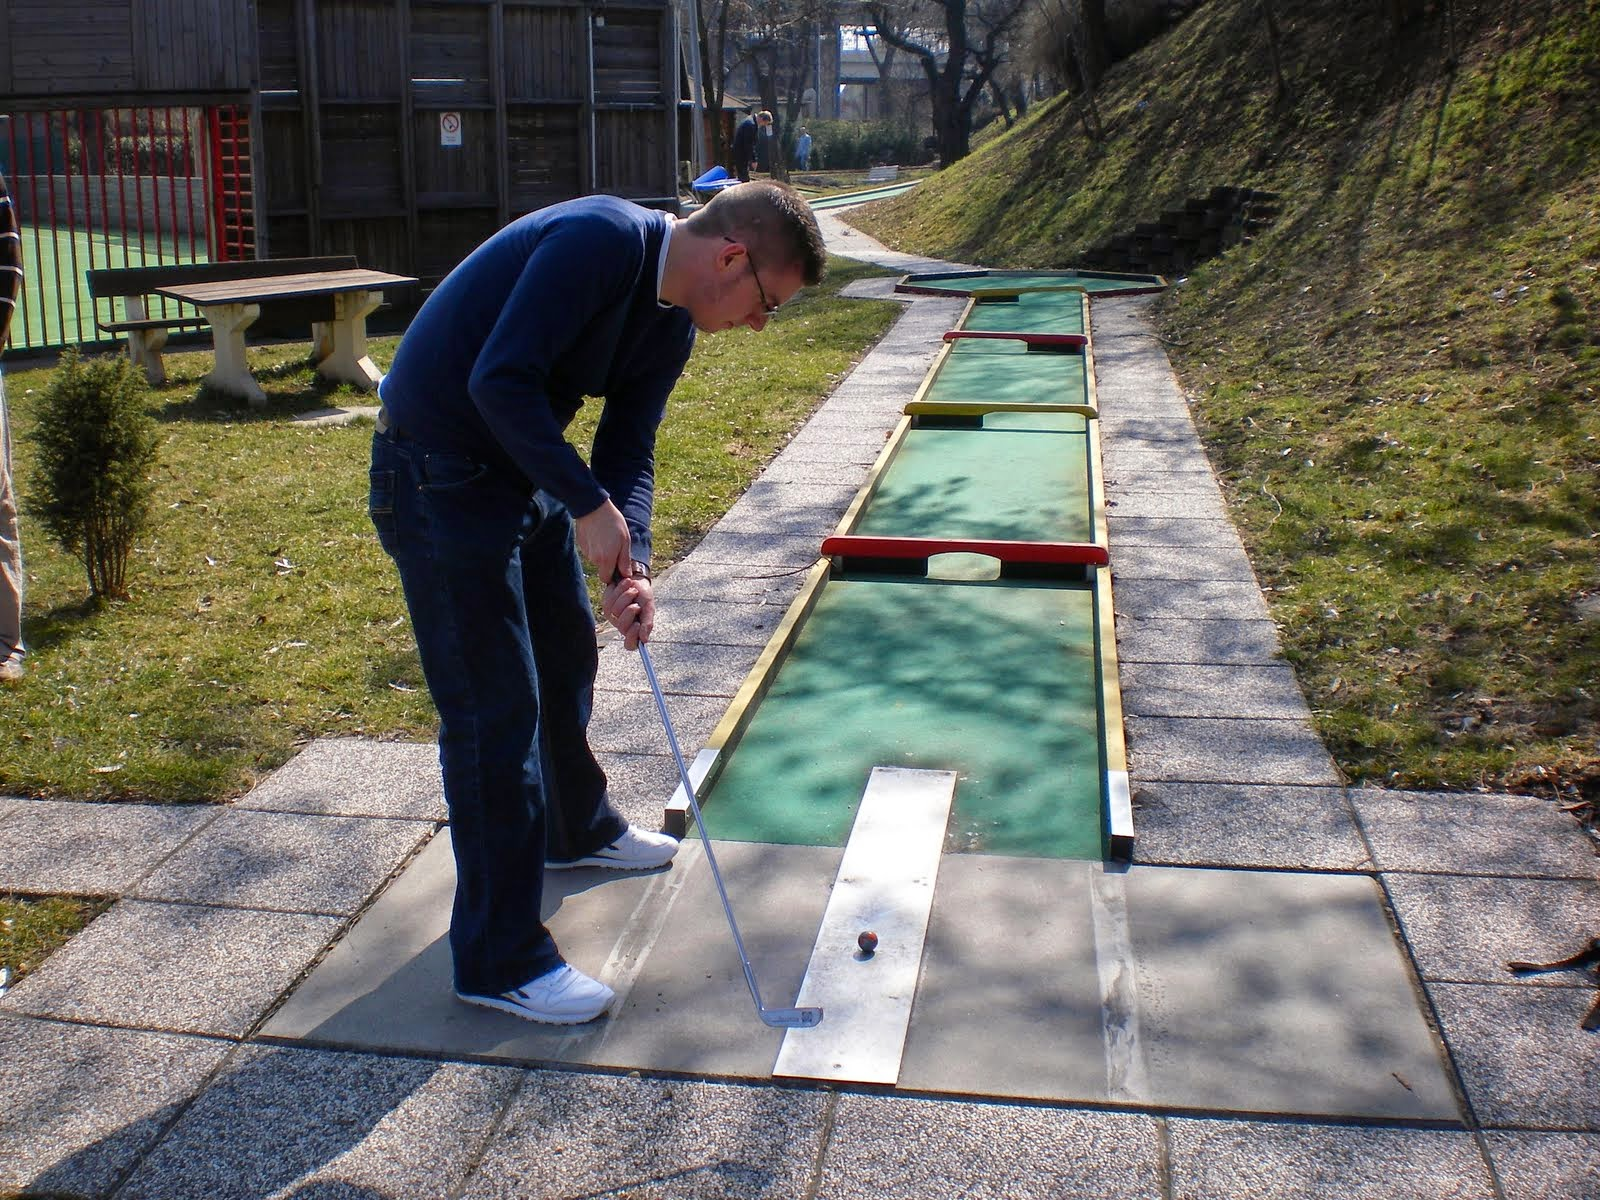 Playing the Swedish Felt Minigolf course at the Askoe Wien Wasserpark in Vienna, Austria